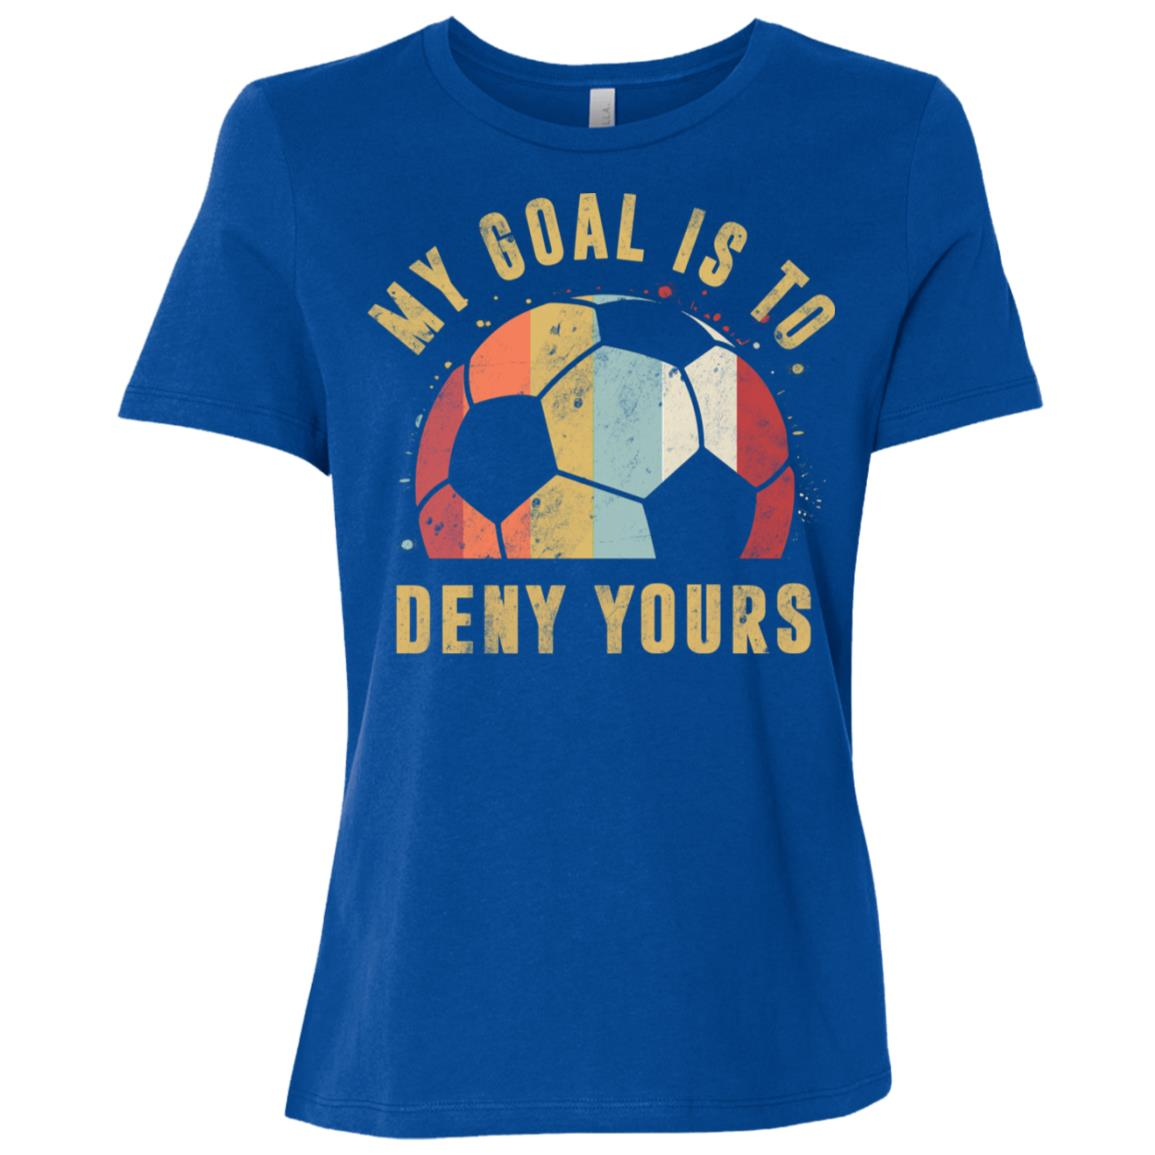 Soccer Gift My Goal Is To Deny Yours Disstress Women Short Sleeve T-Shirt